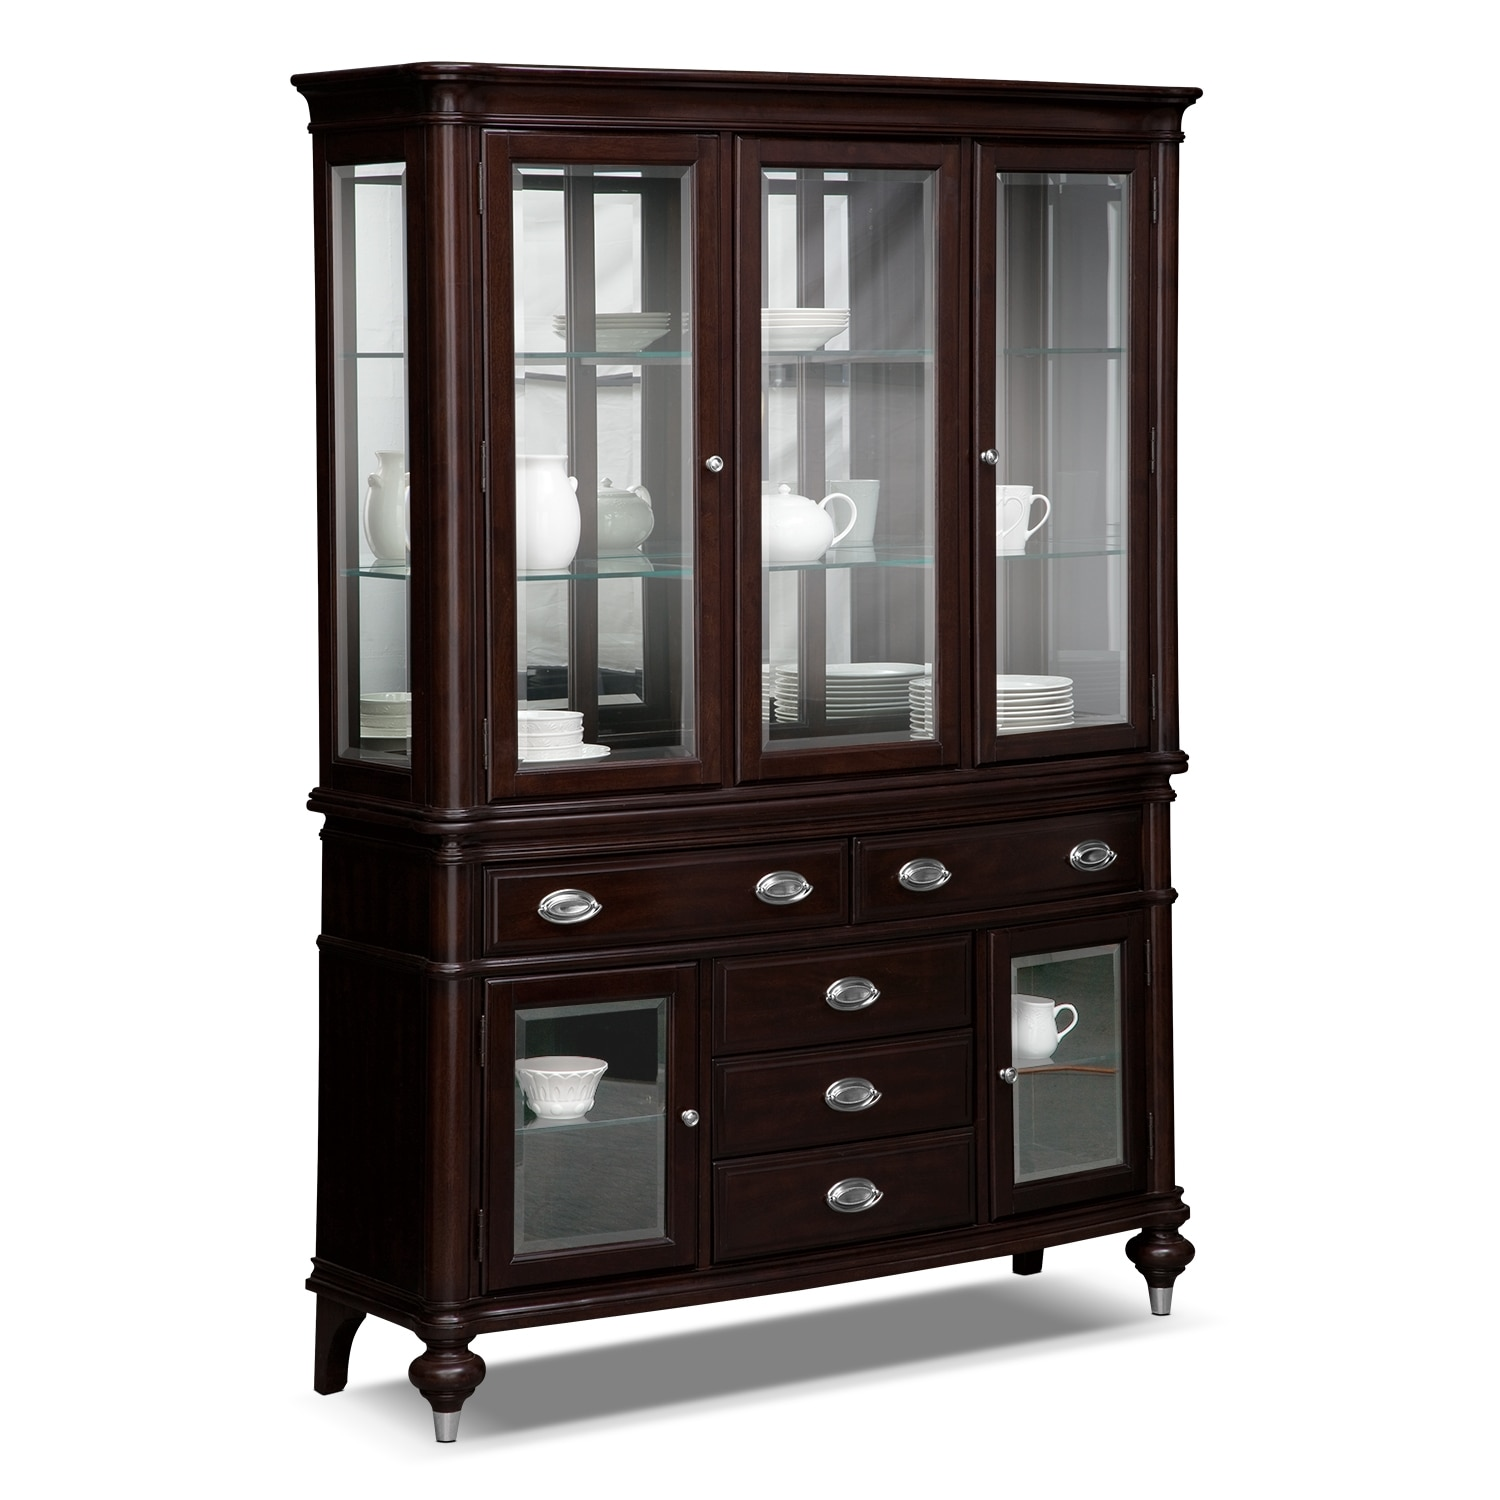 dining room hutch furniture home design. Black Bedroom Furniture Sets. Home Design Ideas